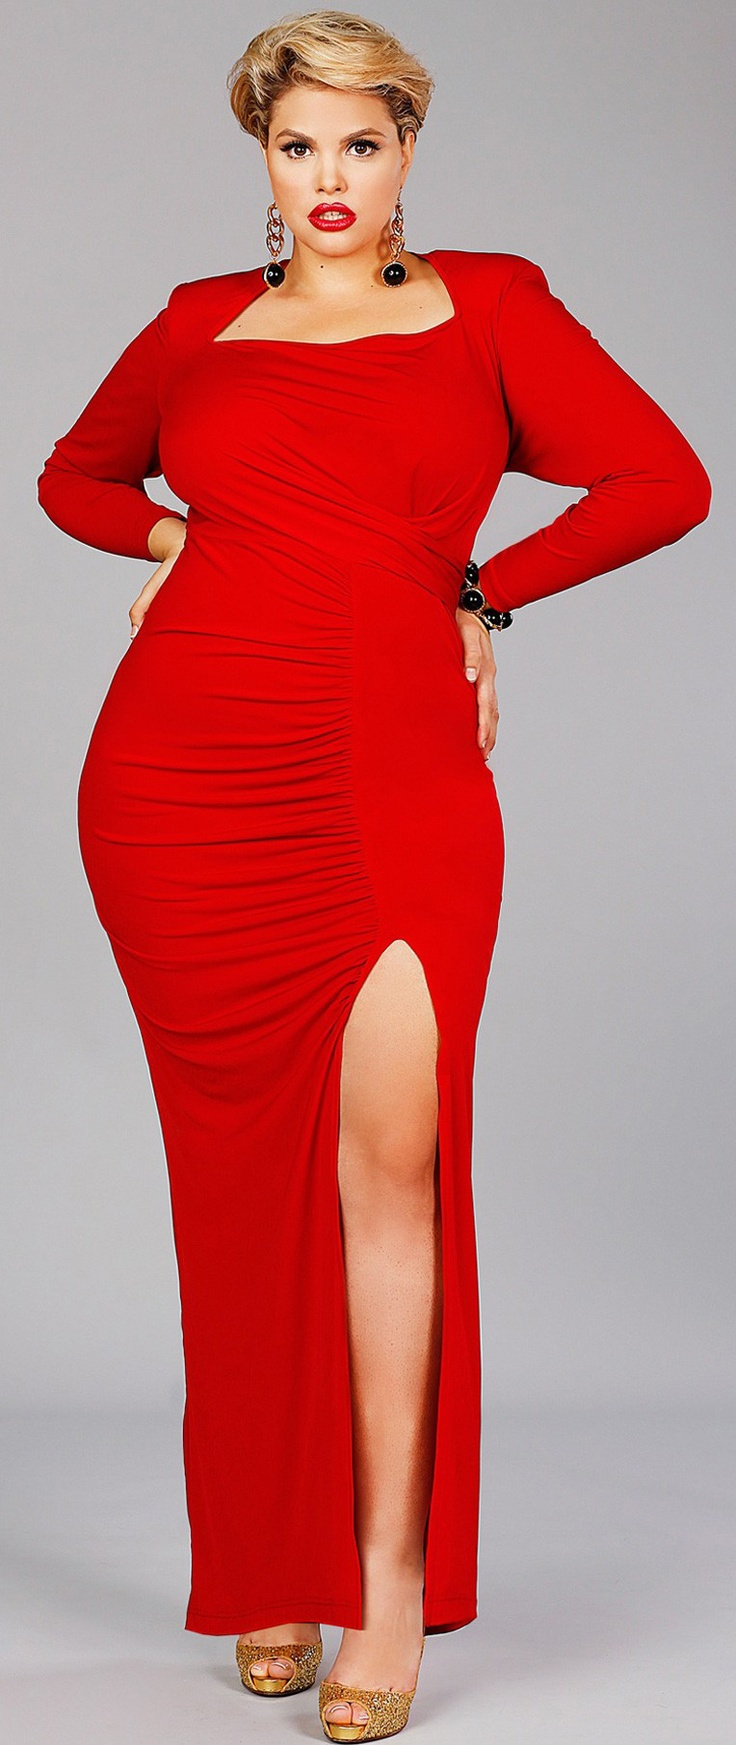 Plus Size Red Dresses - Long Dresses Online